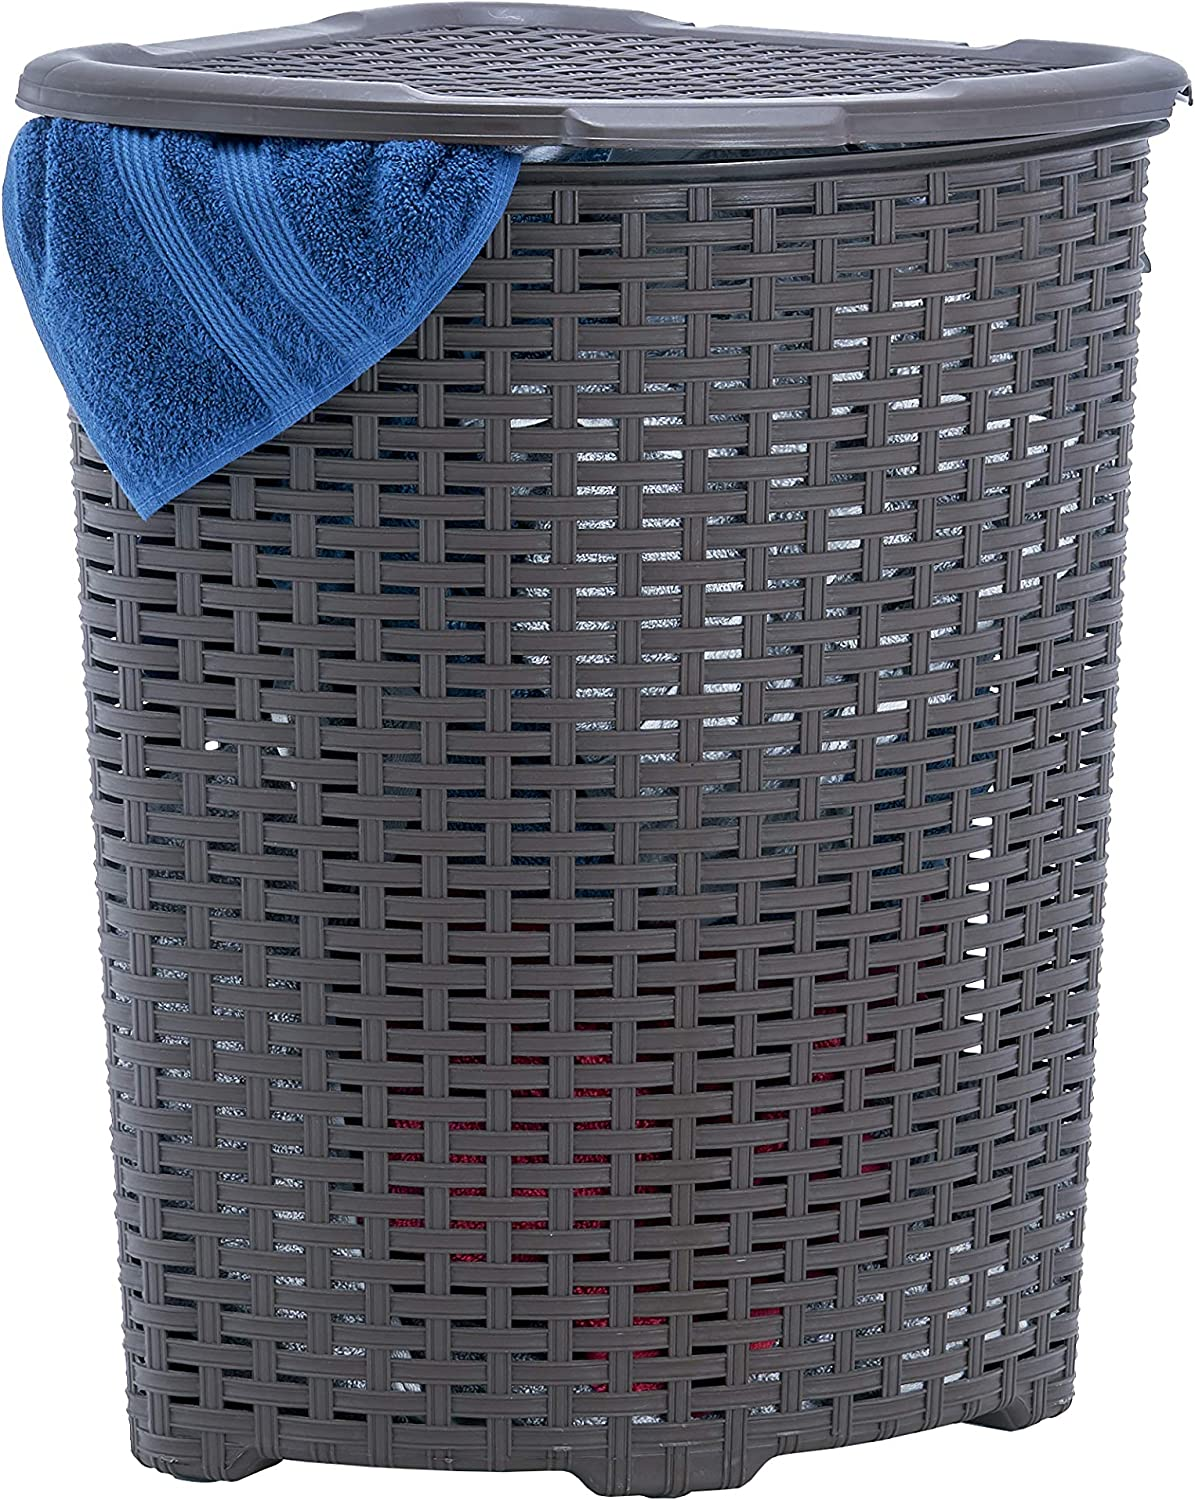 Corner Laundry Hamper Basket with Lid 50 Liter - Brown Wicker Hamper, Durable, Lightweight Bin with Cutout Handles - Storage Dirty Cloths Curved Shape Design Fits Bathroom, Door, Closet. By Superio